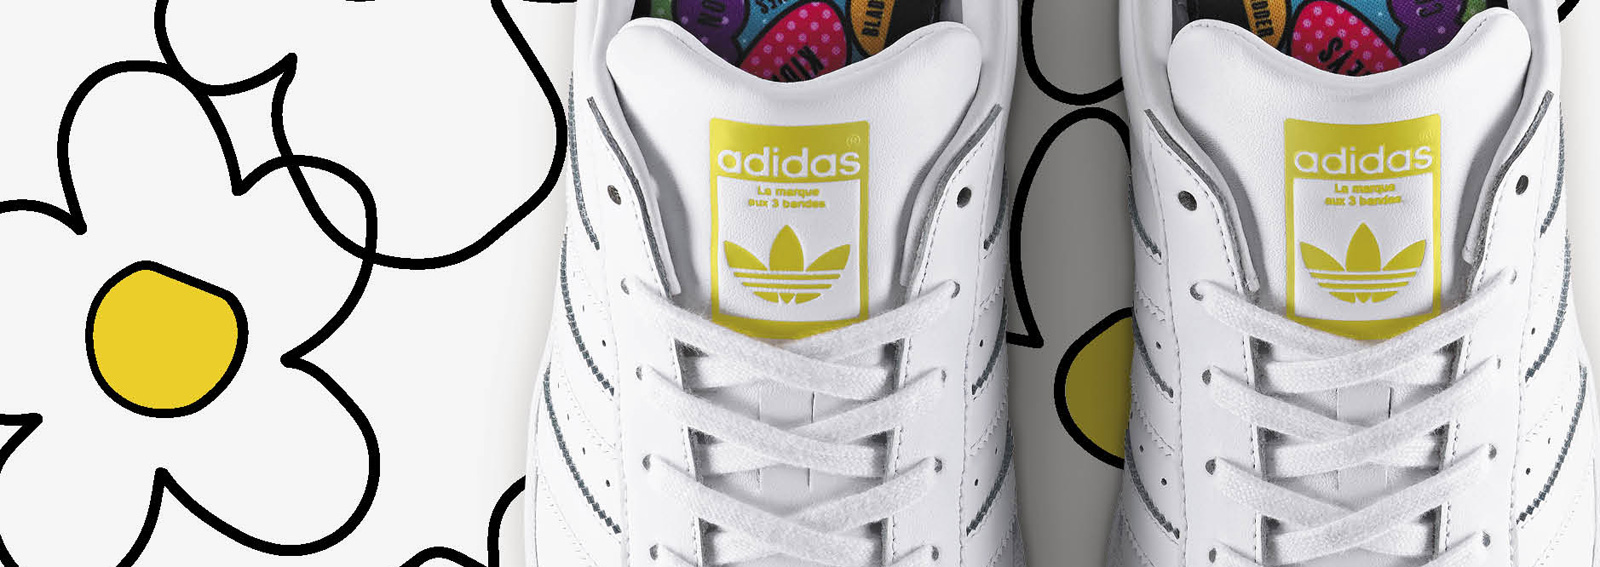 new style aa632 ae5f6 Le nuove Adidas Superstar firmate Pharrell. cover-desktop-adidas.  cover-desktop-adidas